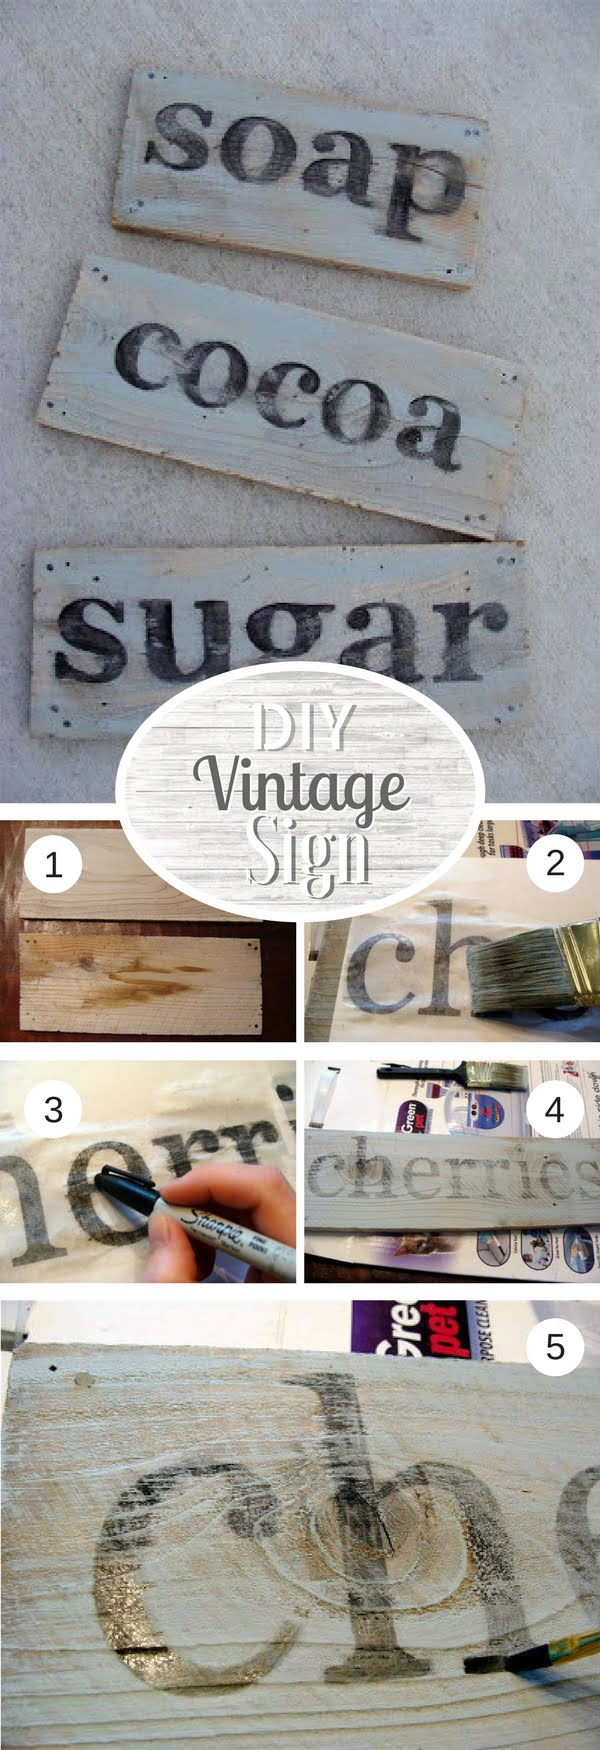 17 Fab DIY Farmhouse Signs You Can Make Yourself - Check out how to make an easy DIY vintage sign